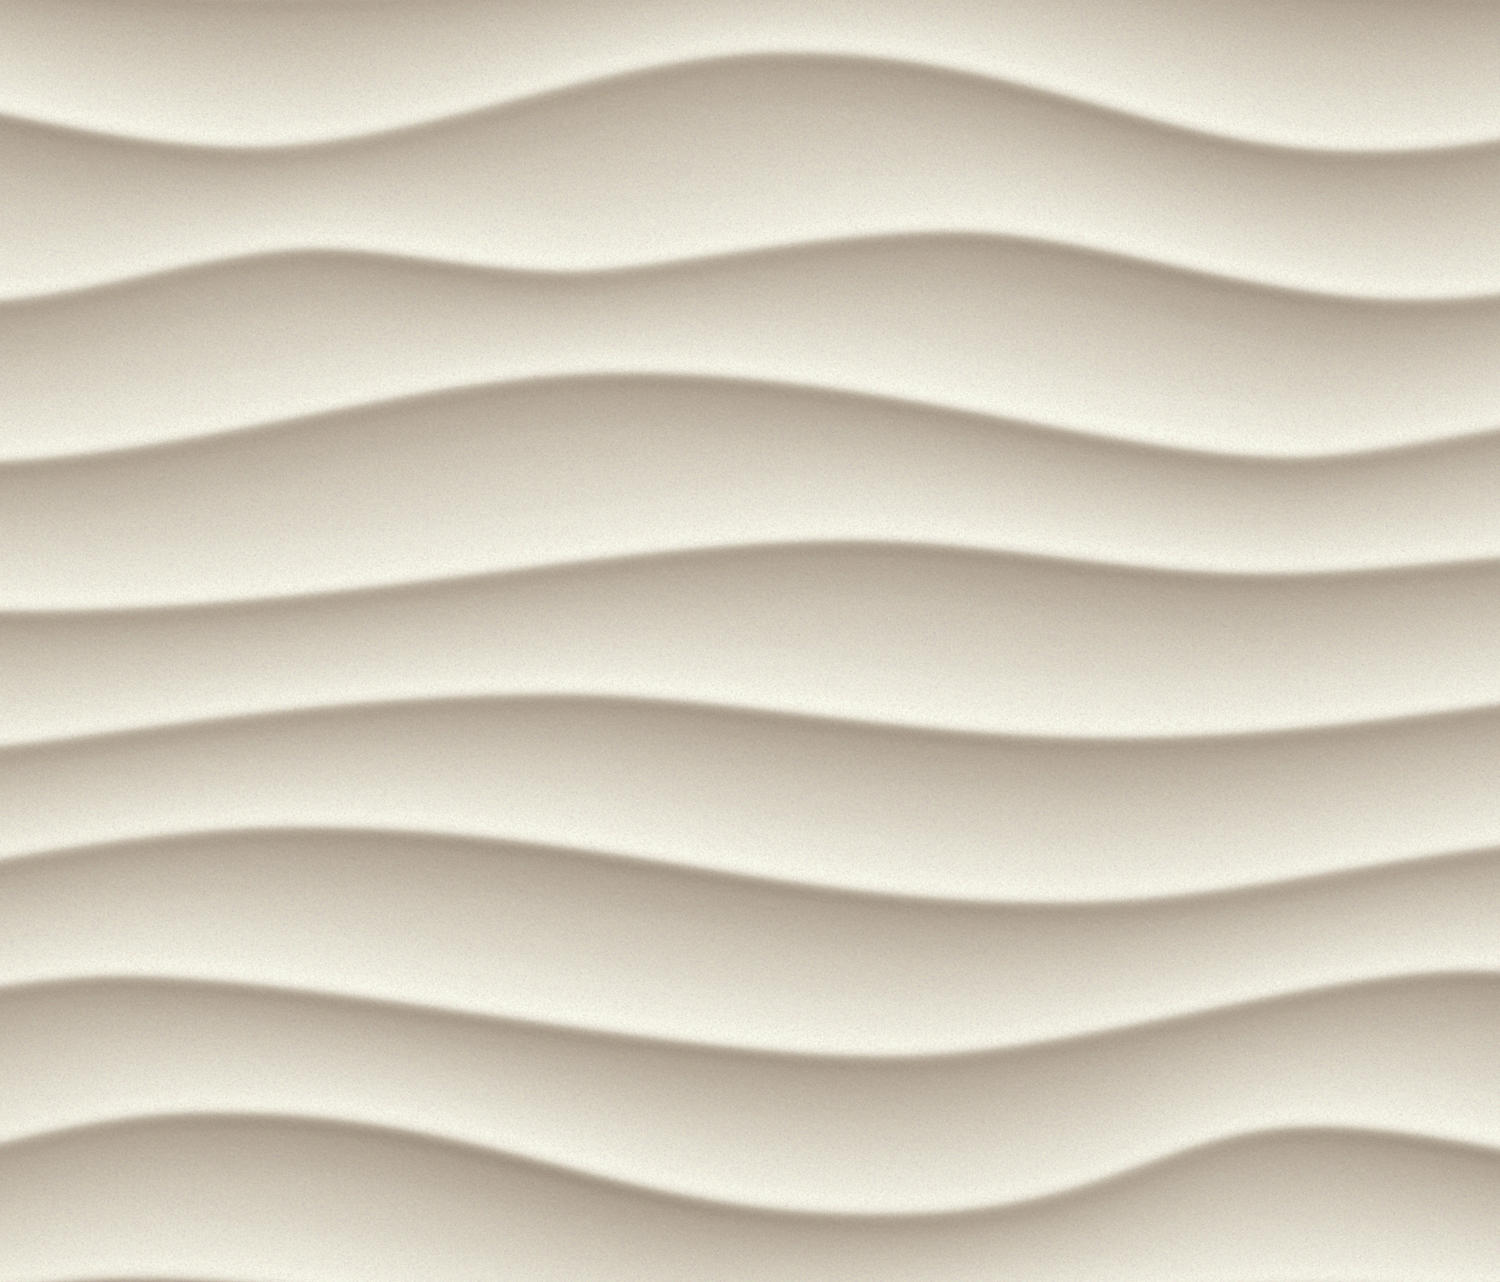 3D WALL DUNE SAND  Ceramic tiles from Atlas Concorde